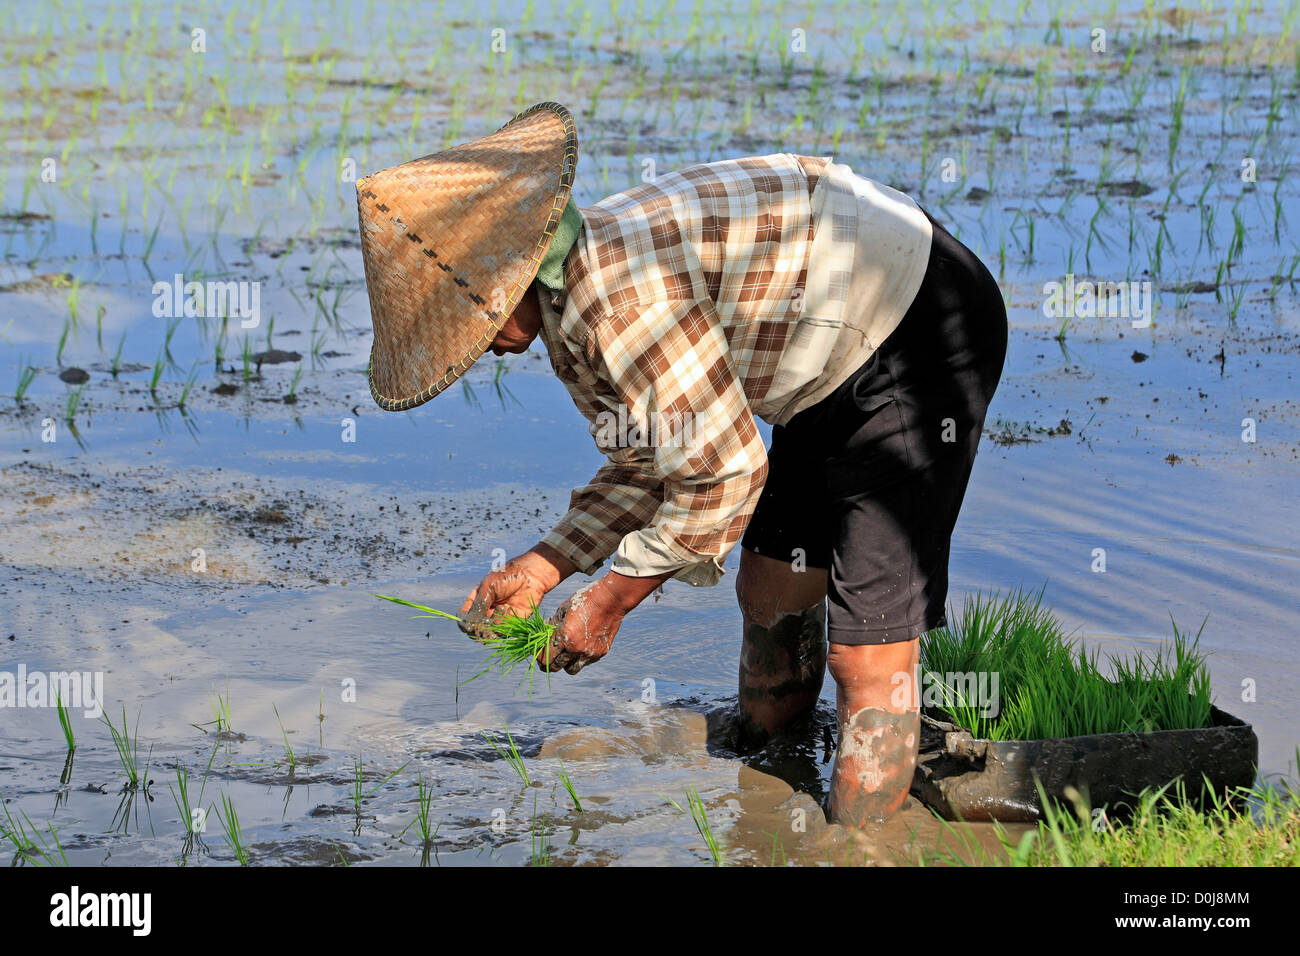 Farmer planting rice wearing a conical hat, near Ubud. Bali, Indonesia - Stock Image